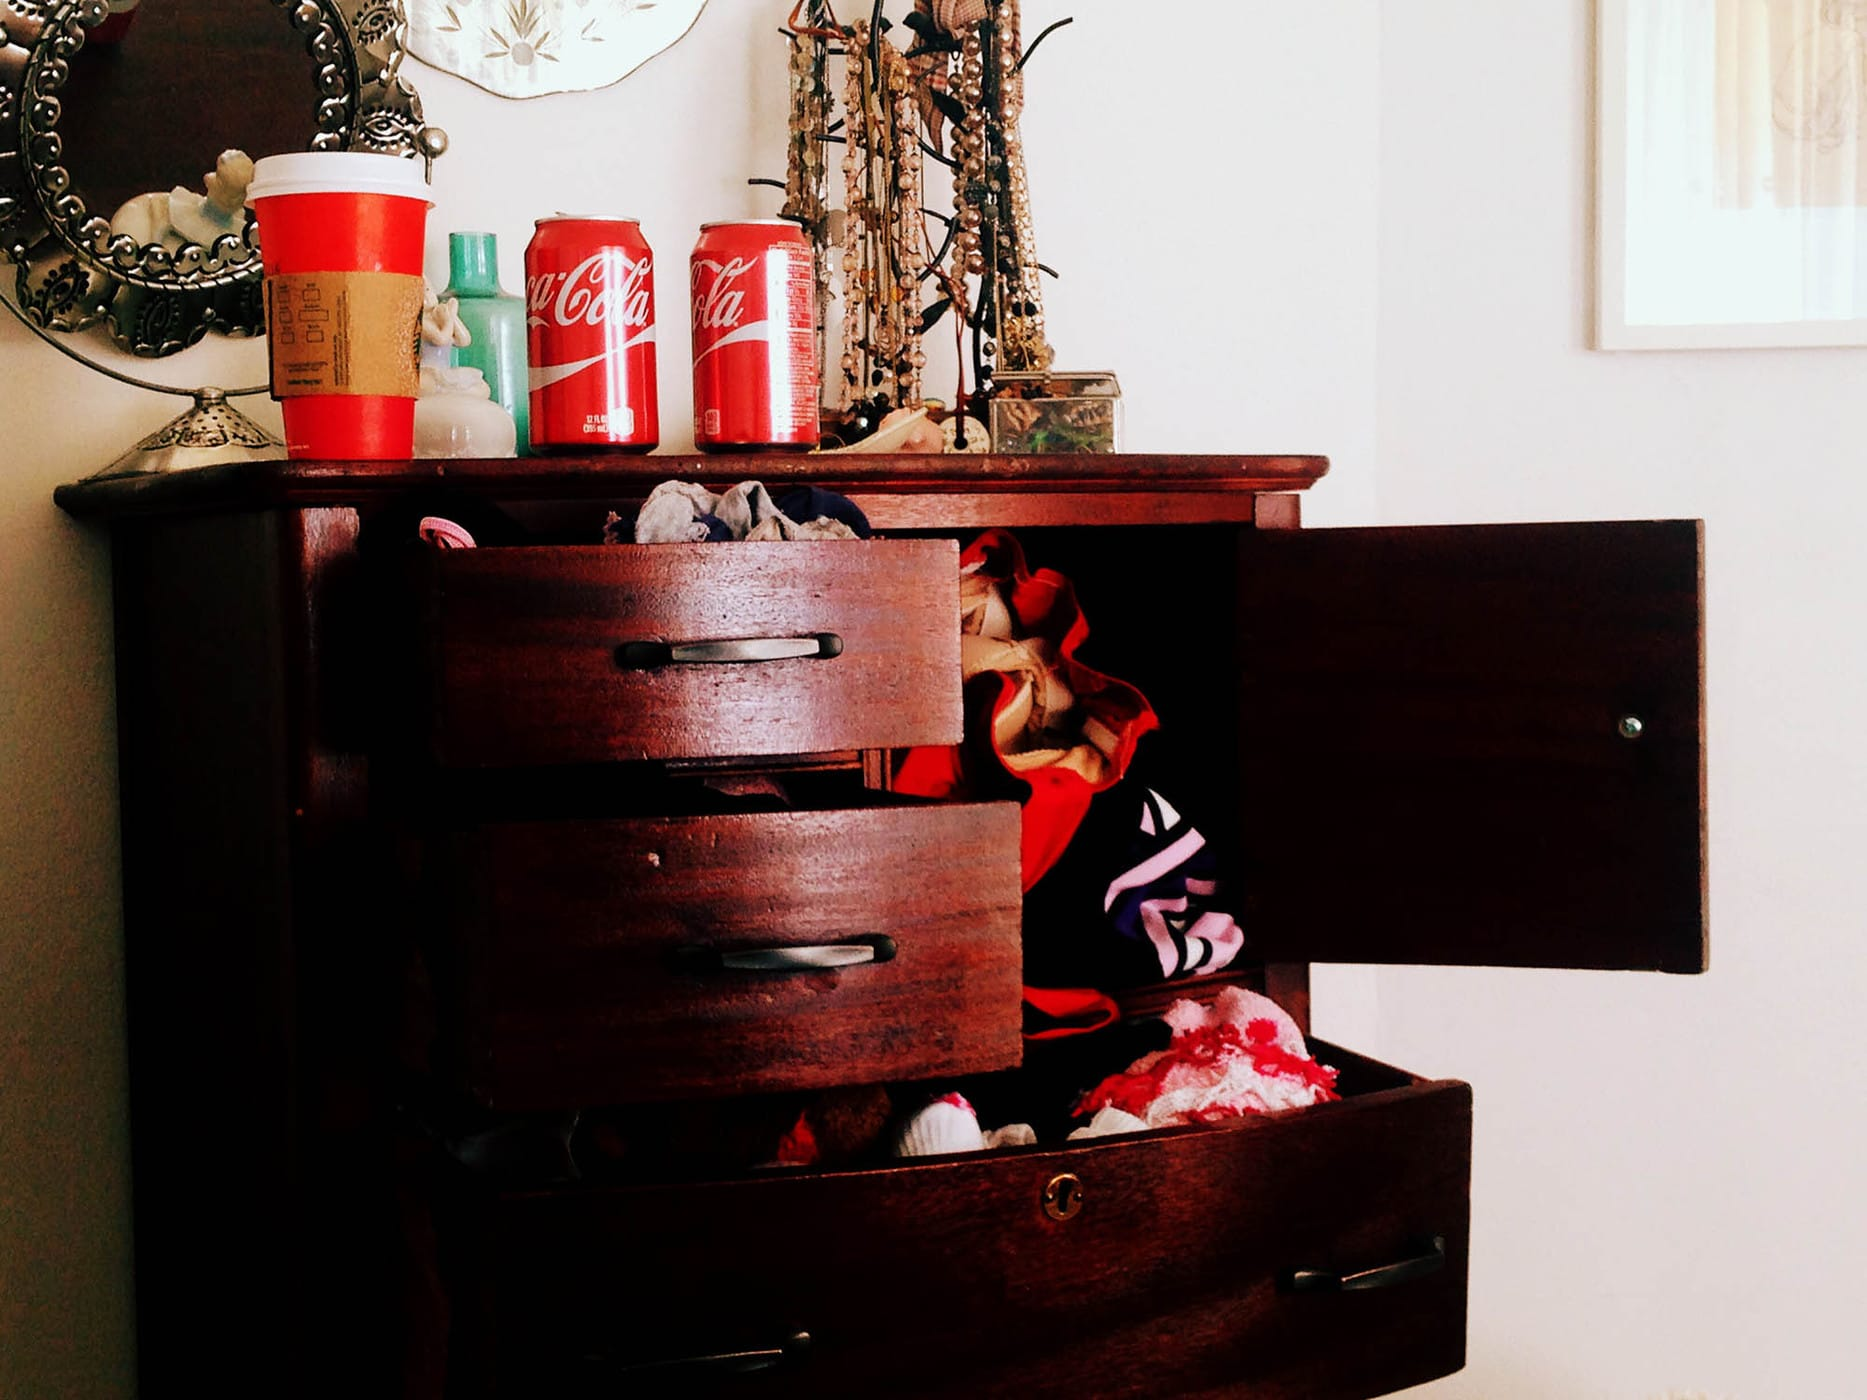 I tend to have Coke cans and Starbucks cups all over the place.